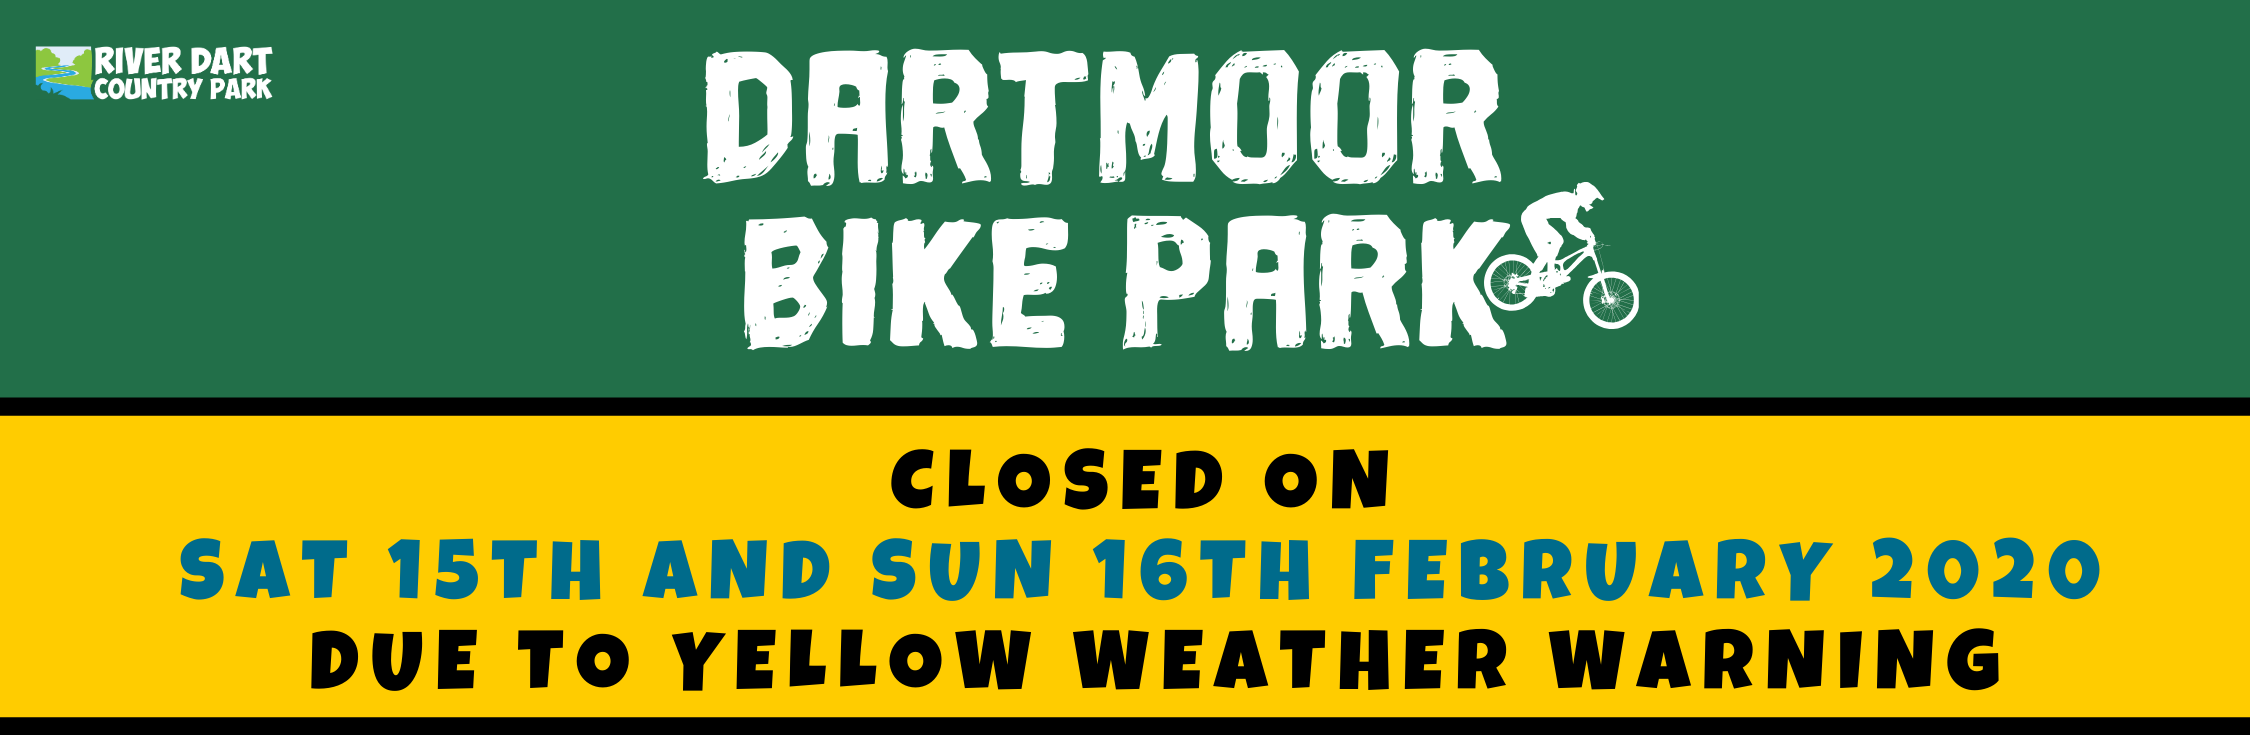 Dartmoor Bike Park Closed Banner